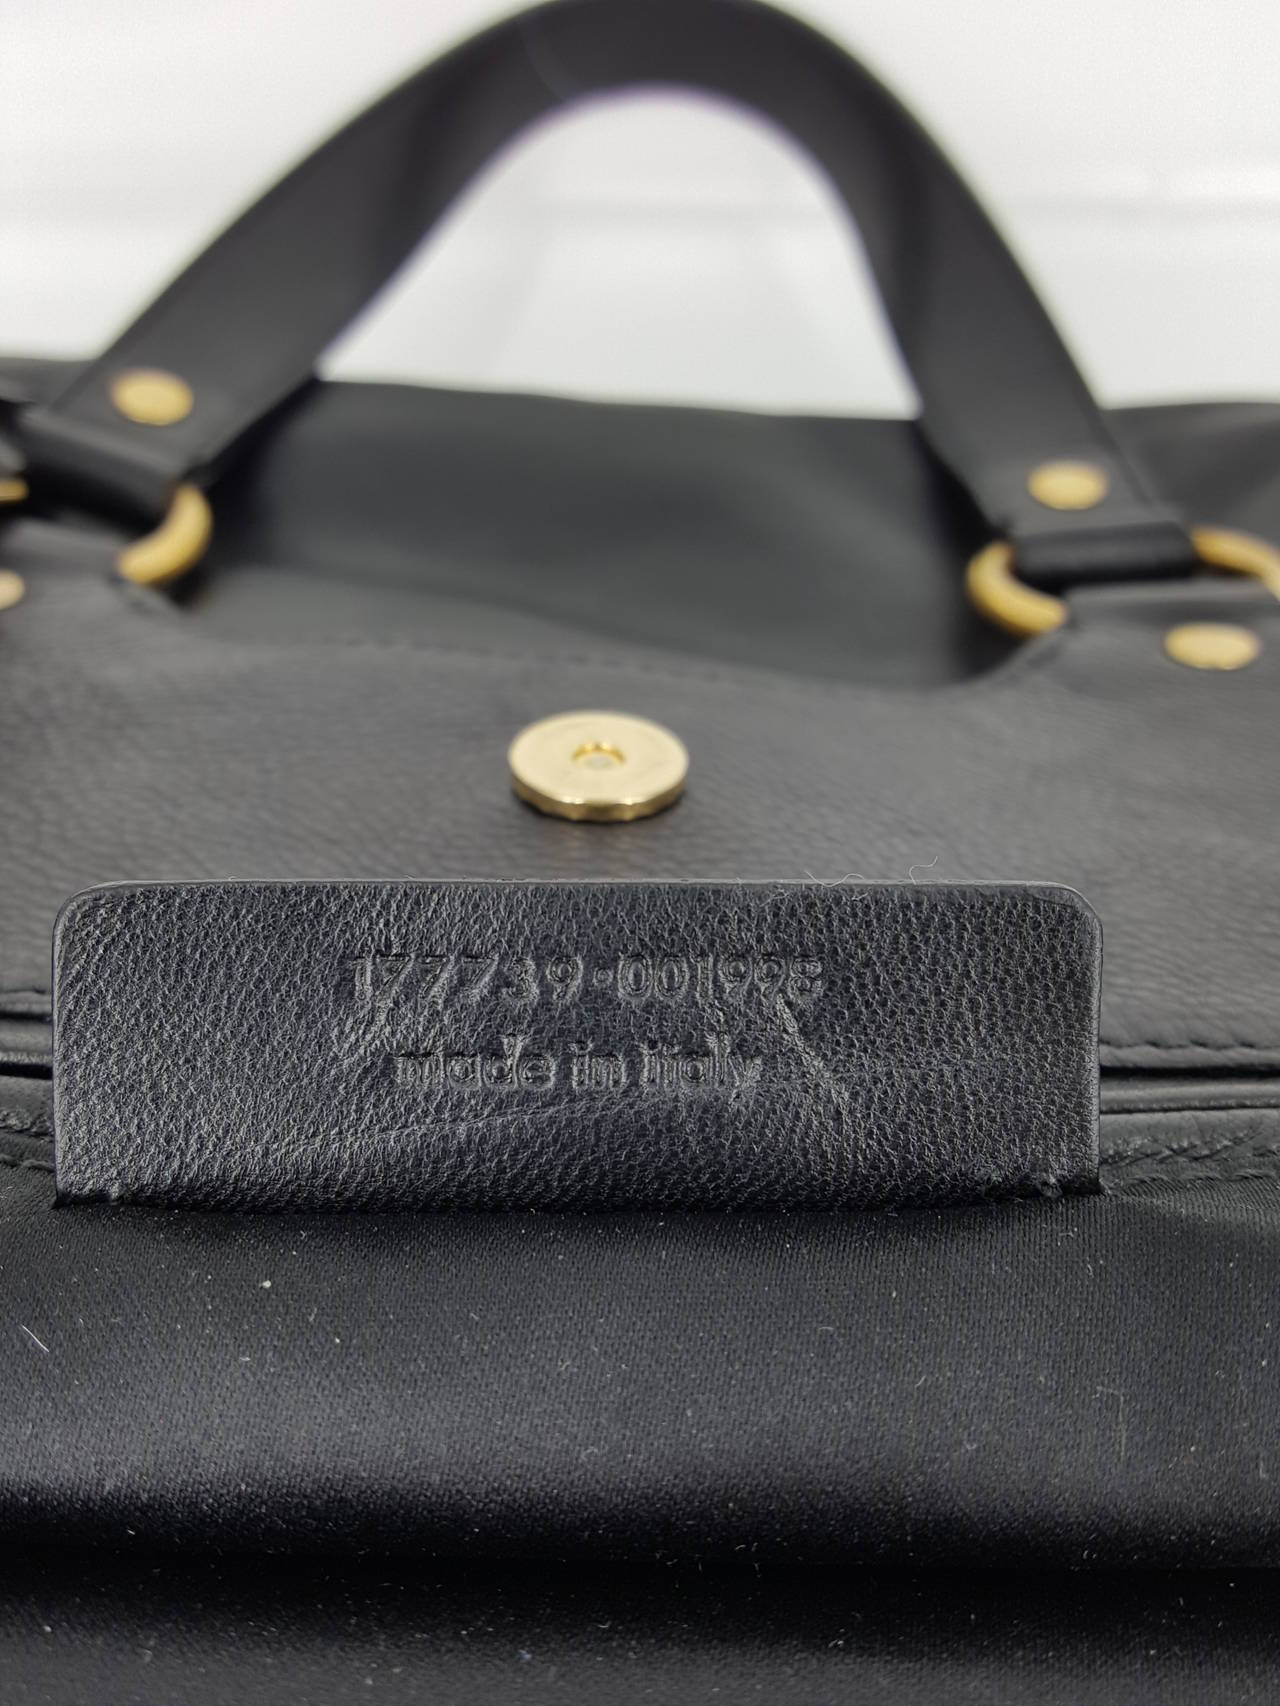 YSL Yves Saint Laurent Black Leather Tribute Bag. For Sale 4